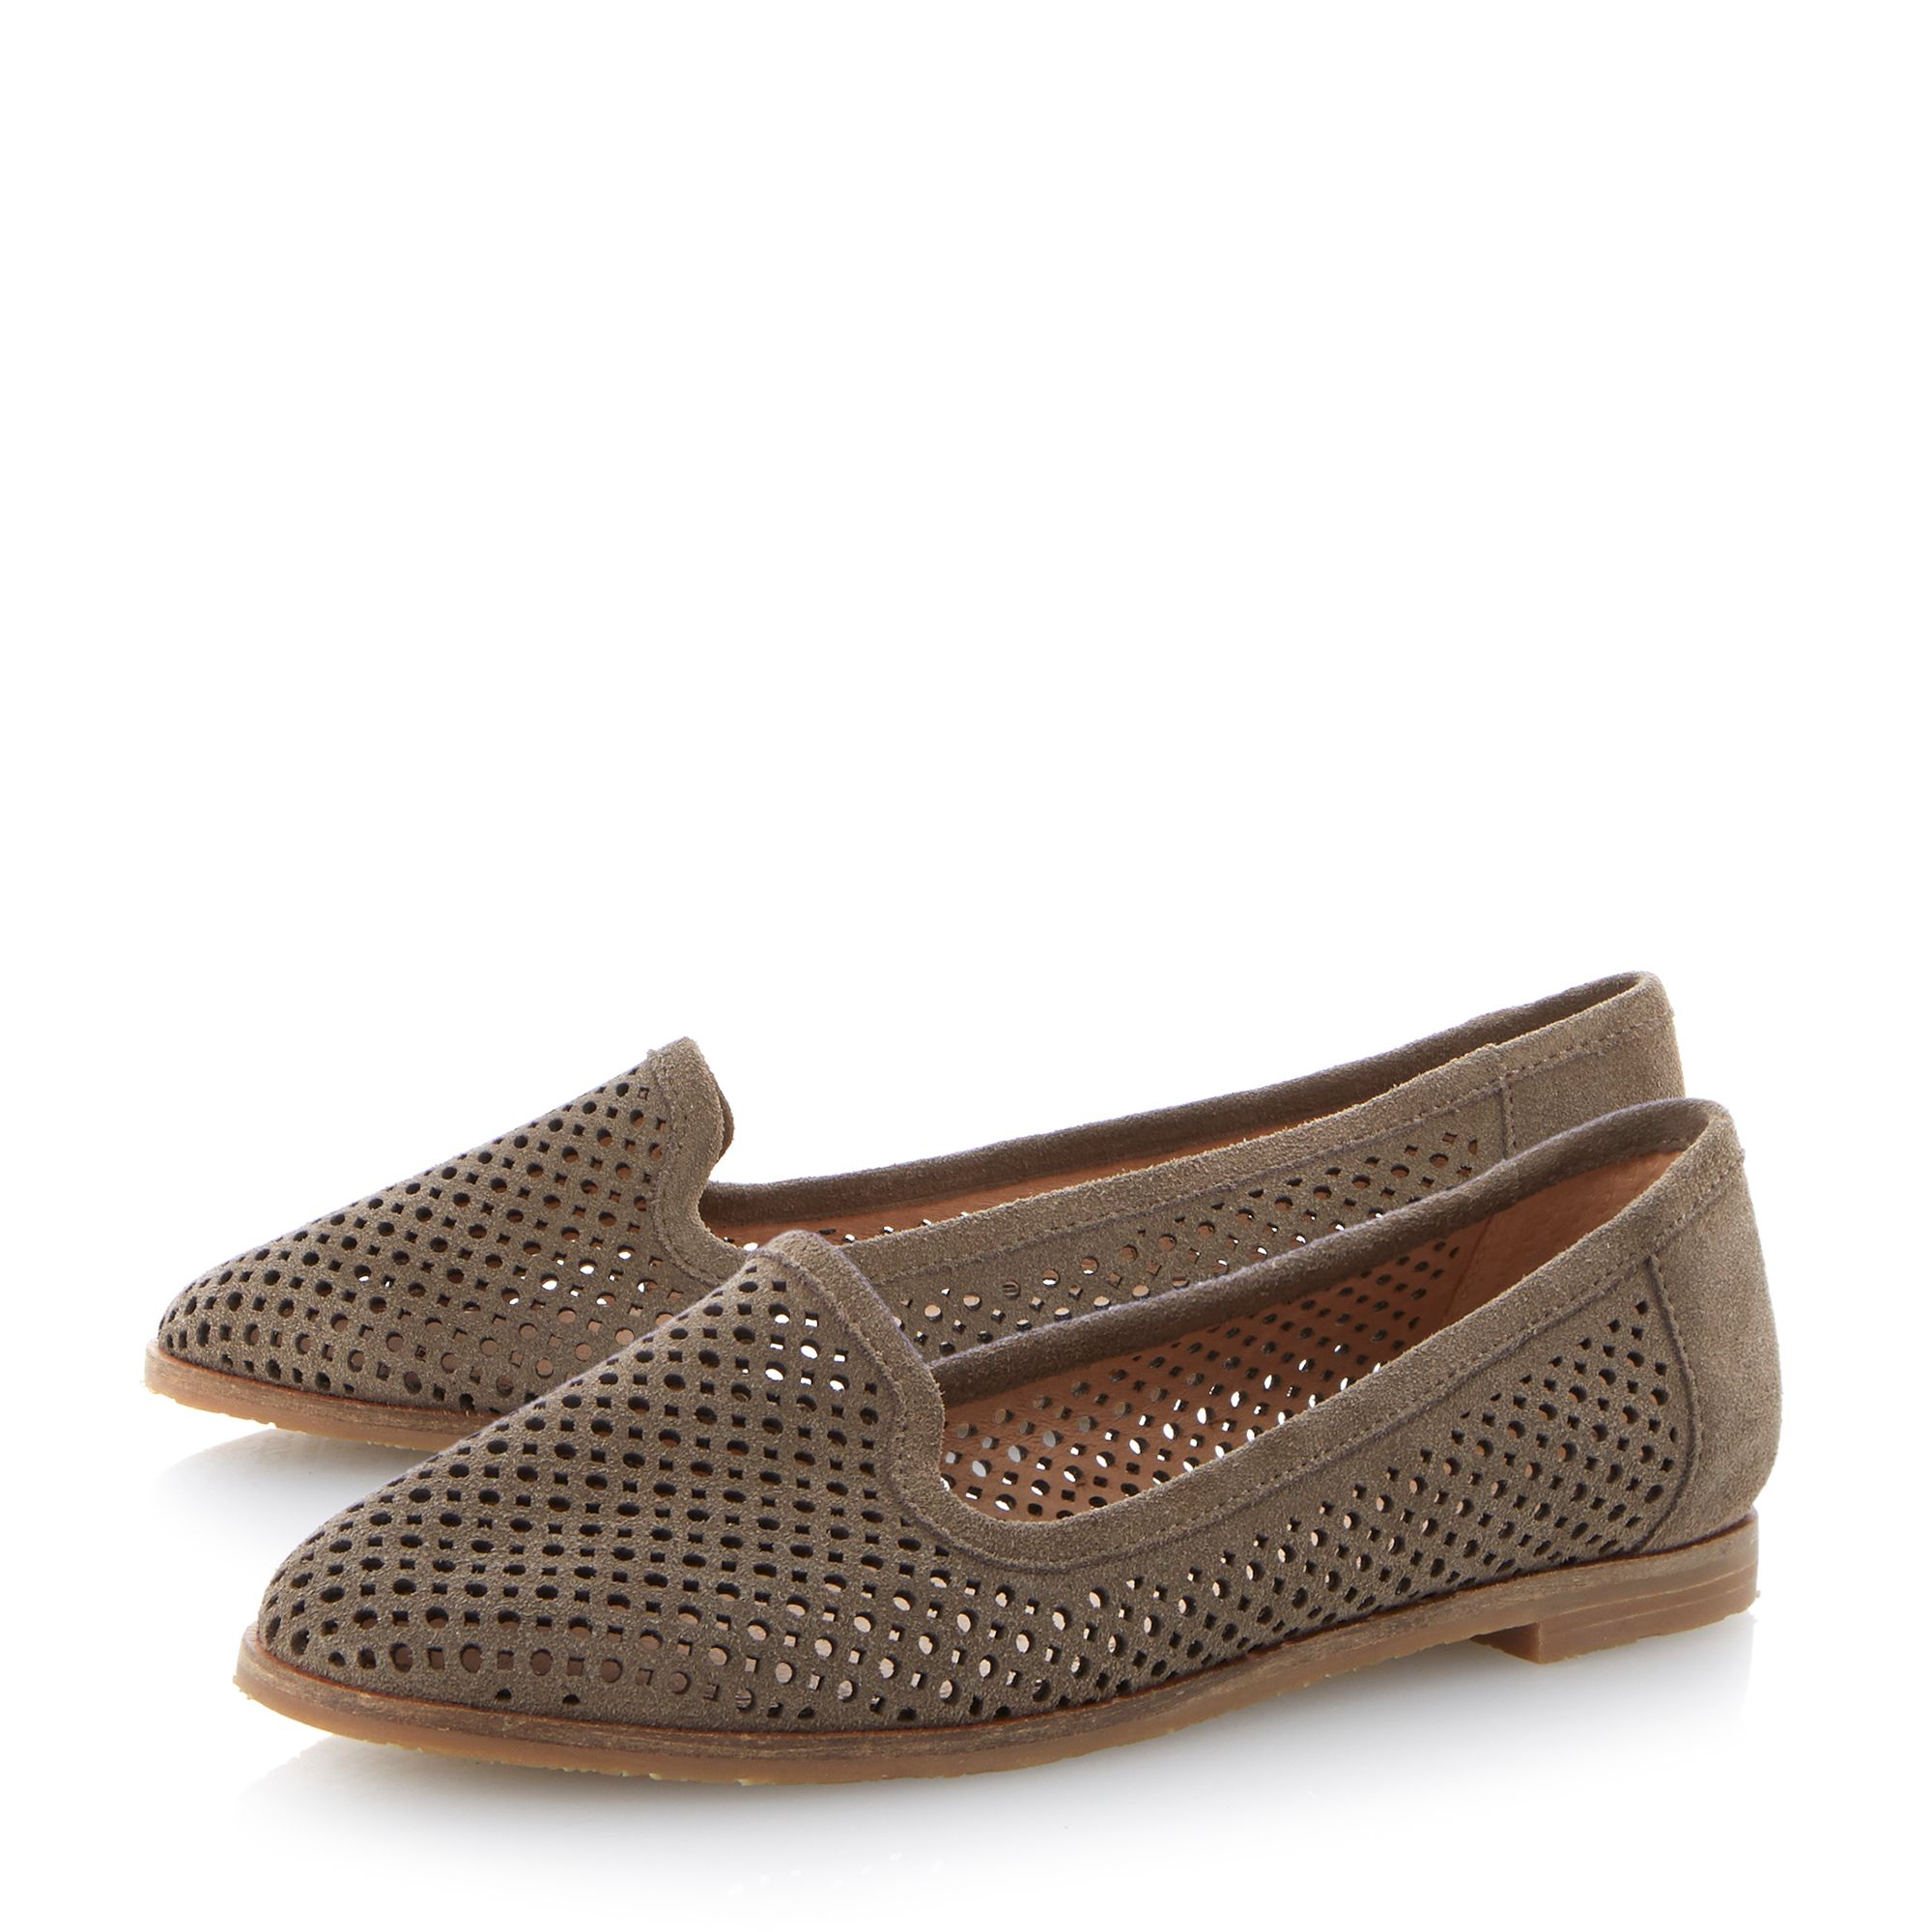 Langham leather flat laser cut slipper shoes